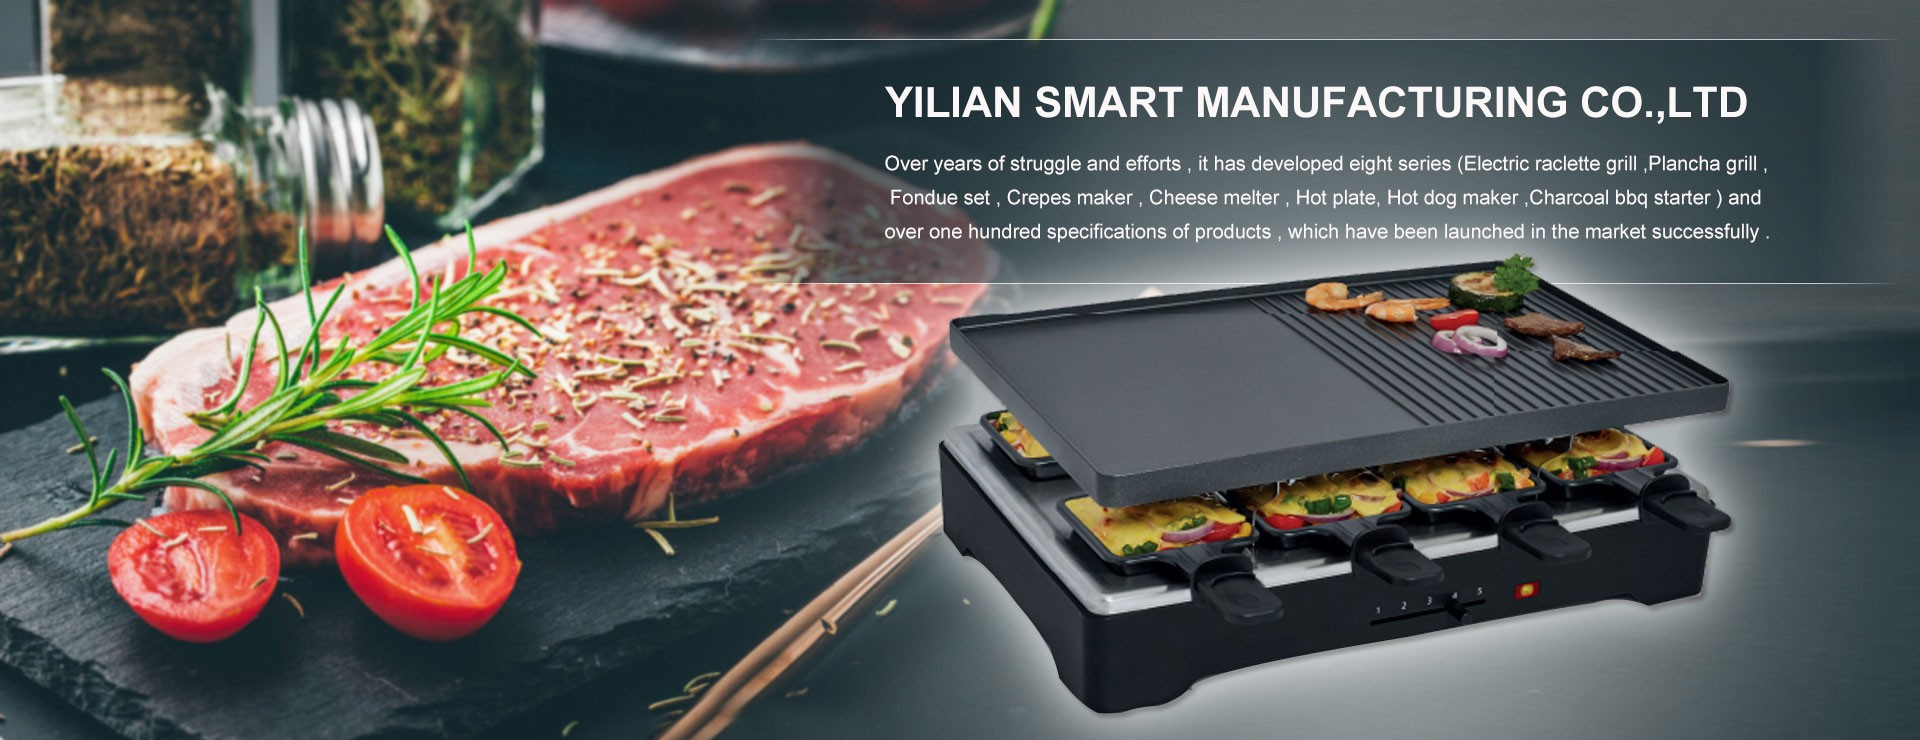 2 Persons Raclette Grill